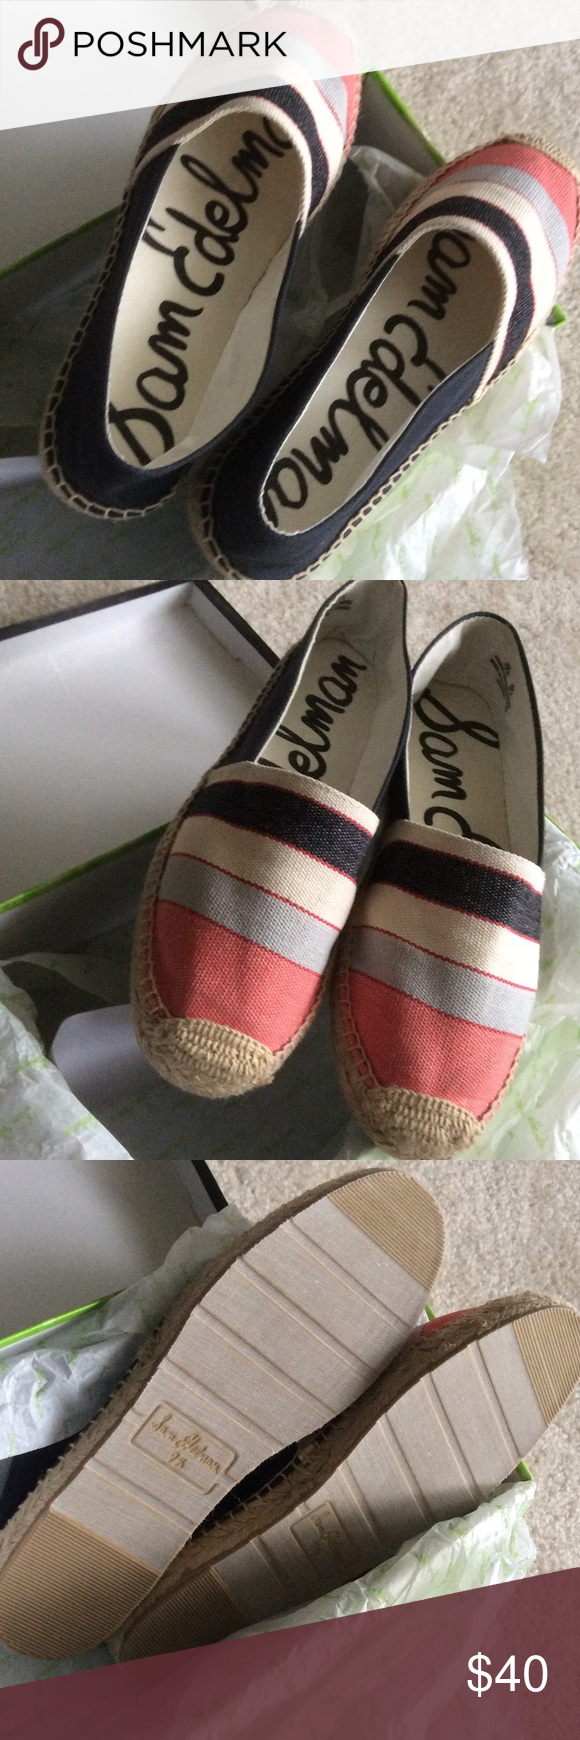 a7b2894b44d92f NWB Sam Edelman Verona espadrilles size 7 This cute and chic espadrilles  says 71 2